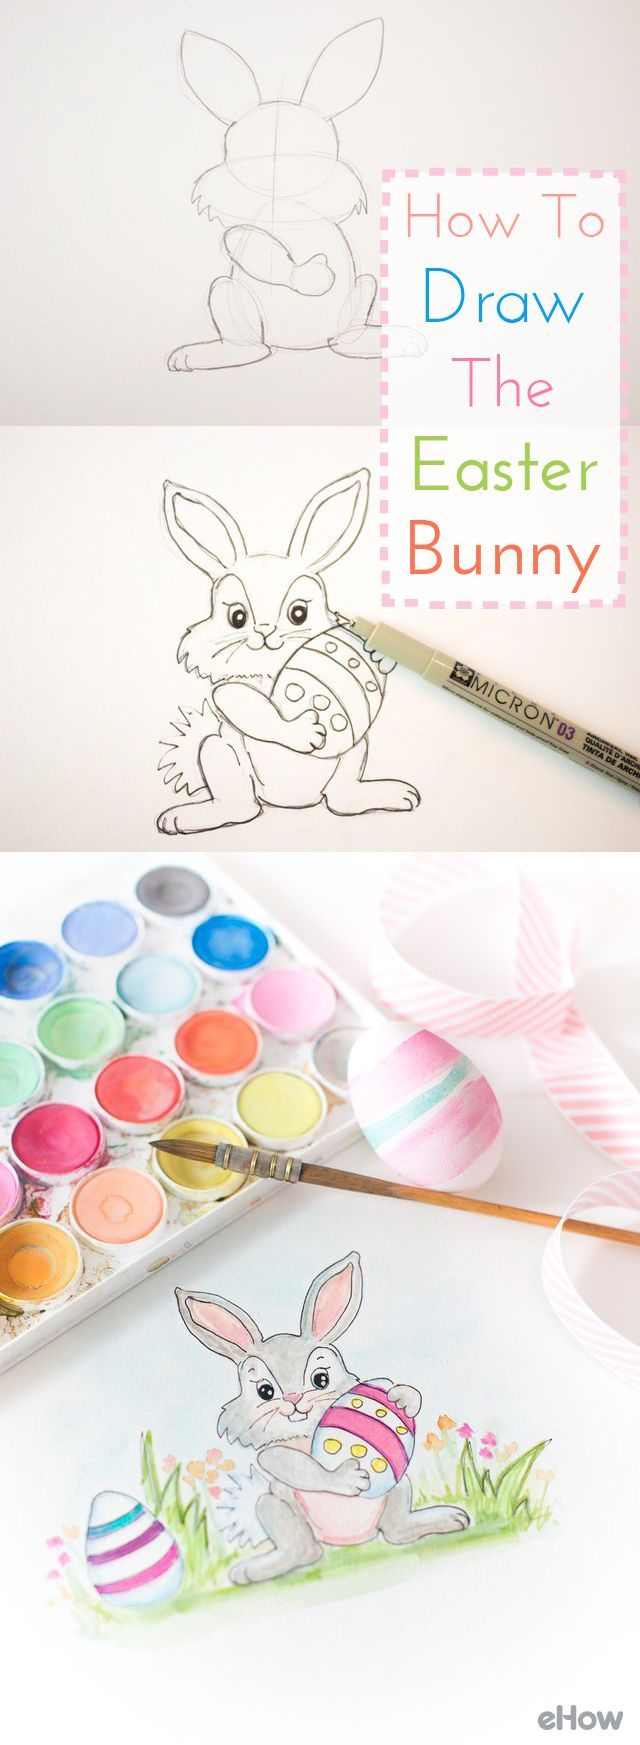 Learn how to try the cutest little bunny no matter how old (or young!) you are with this easy to follow tutorial! http://www.ehow.com/how_3390981_draw-easter-bunny.html?utm_source=pinterest.com&utm_medium=referral&utm_content=freestyle&utm_campaign=fanpage